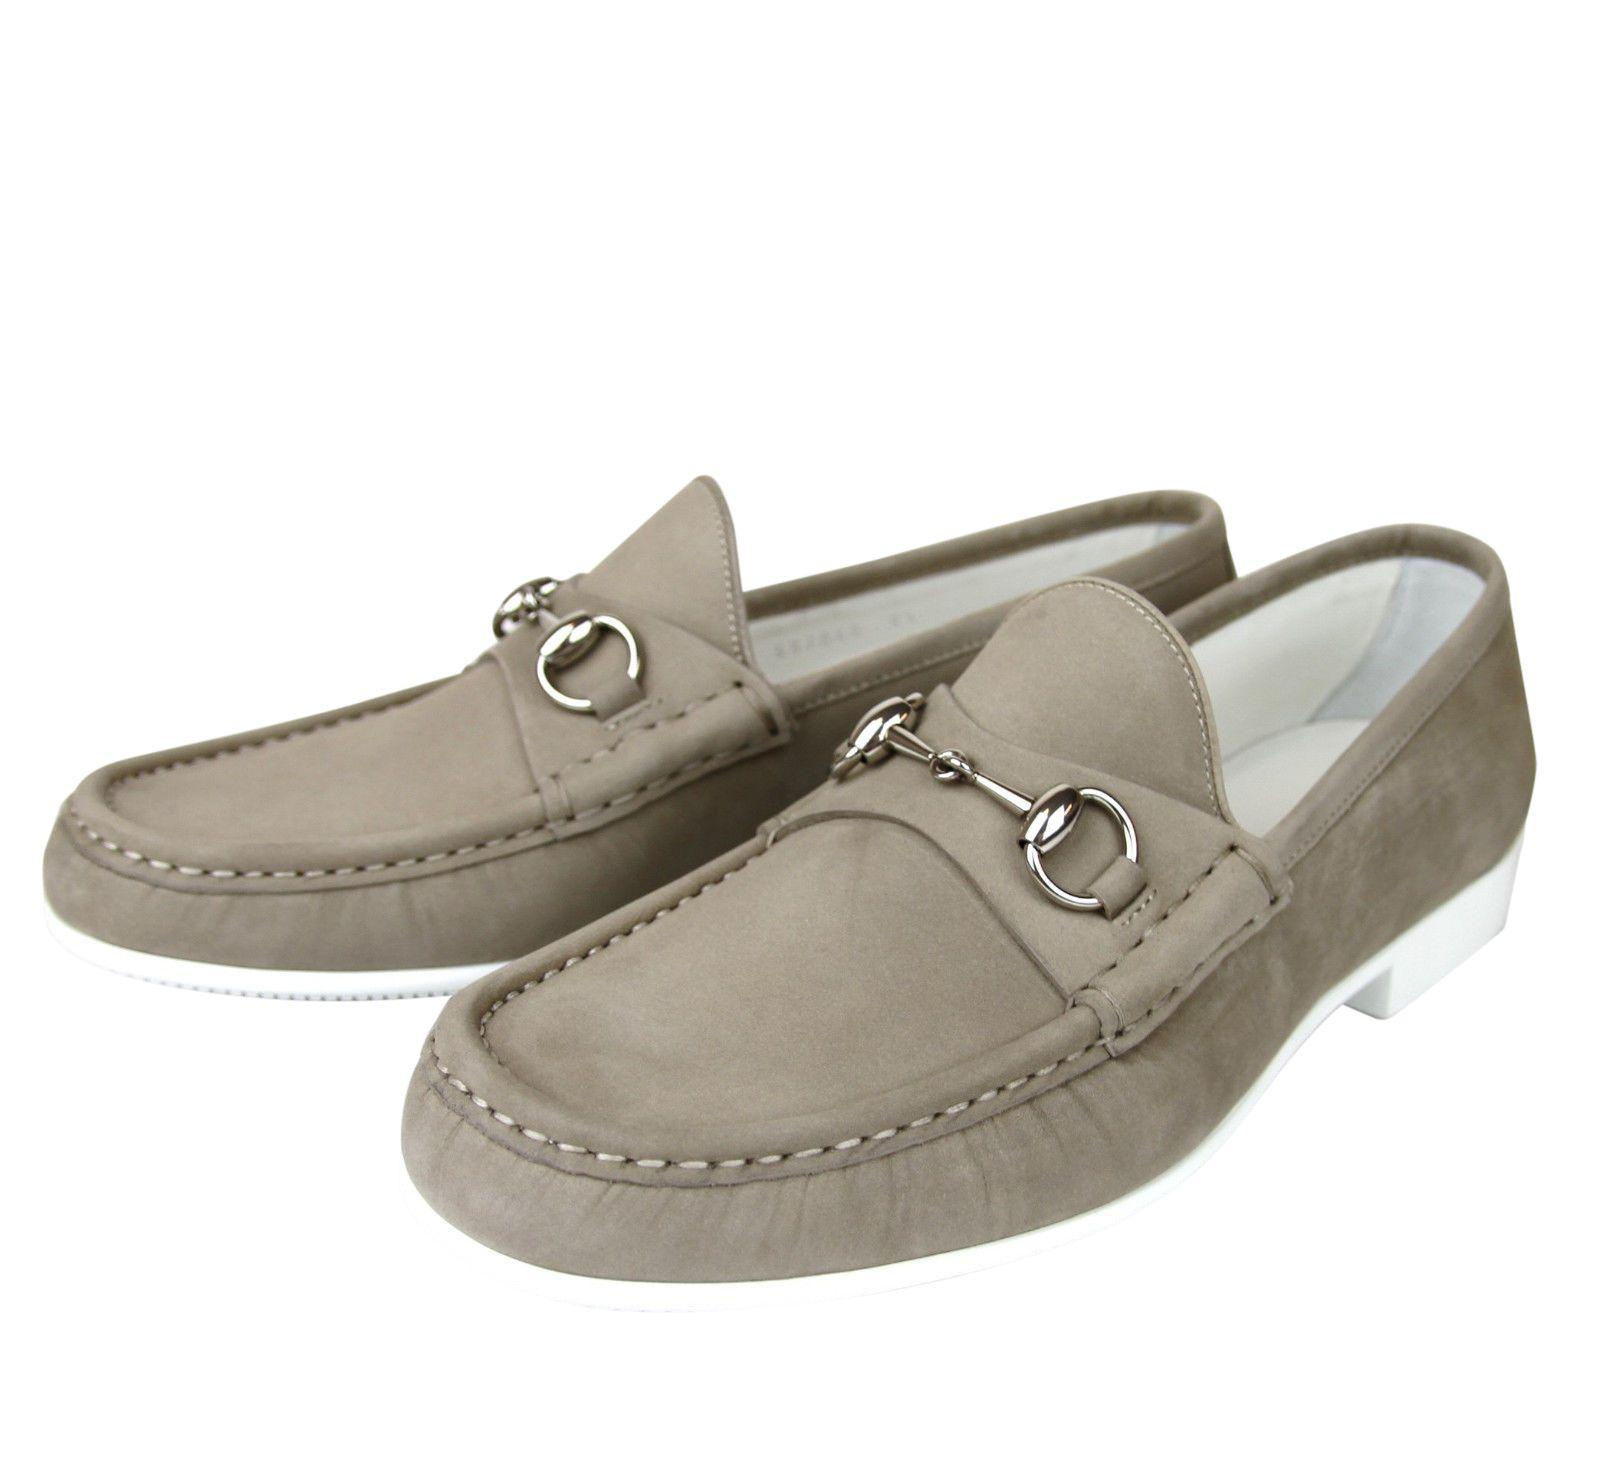 ce806509ef3 Lyst - Gucci Moccasin Suede Horsebit Loafer 337060 Bho00 in Natural ...